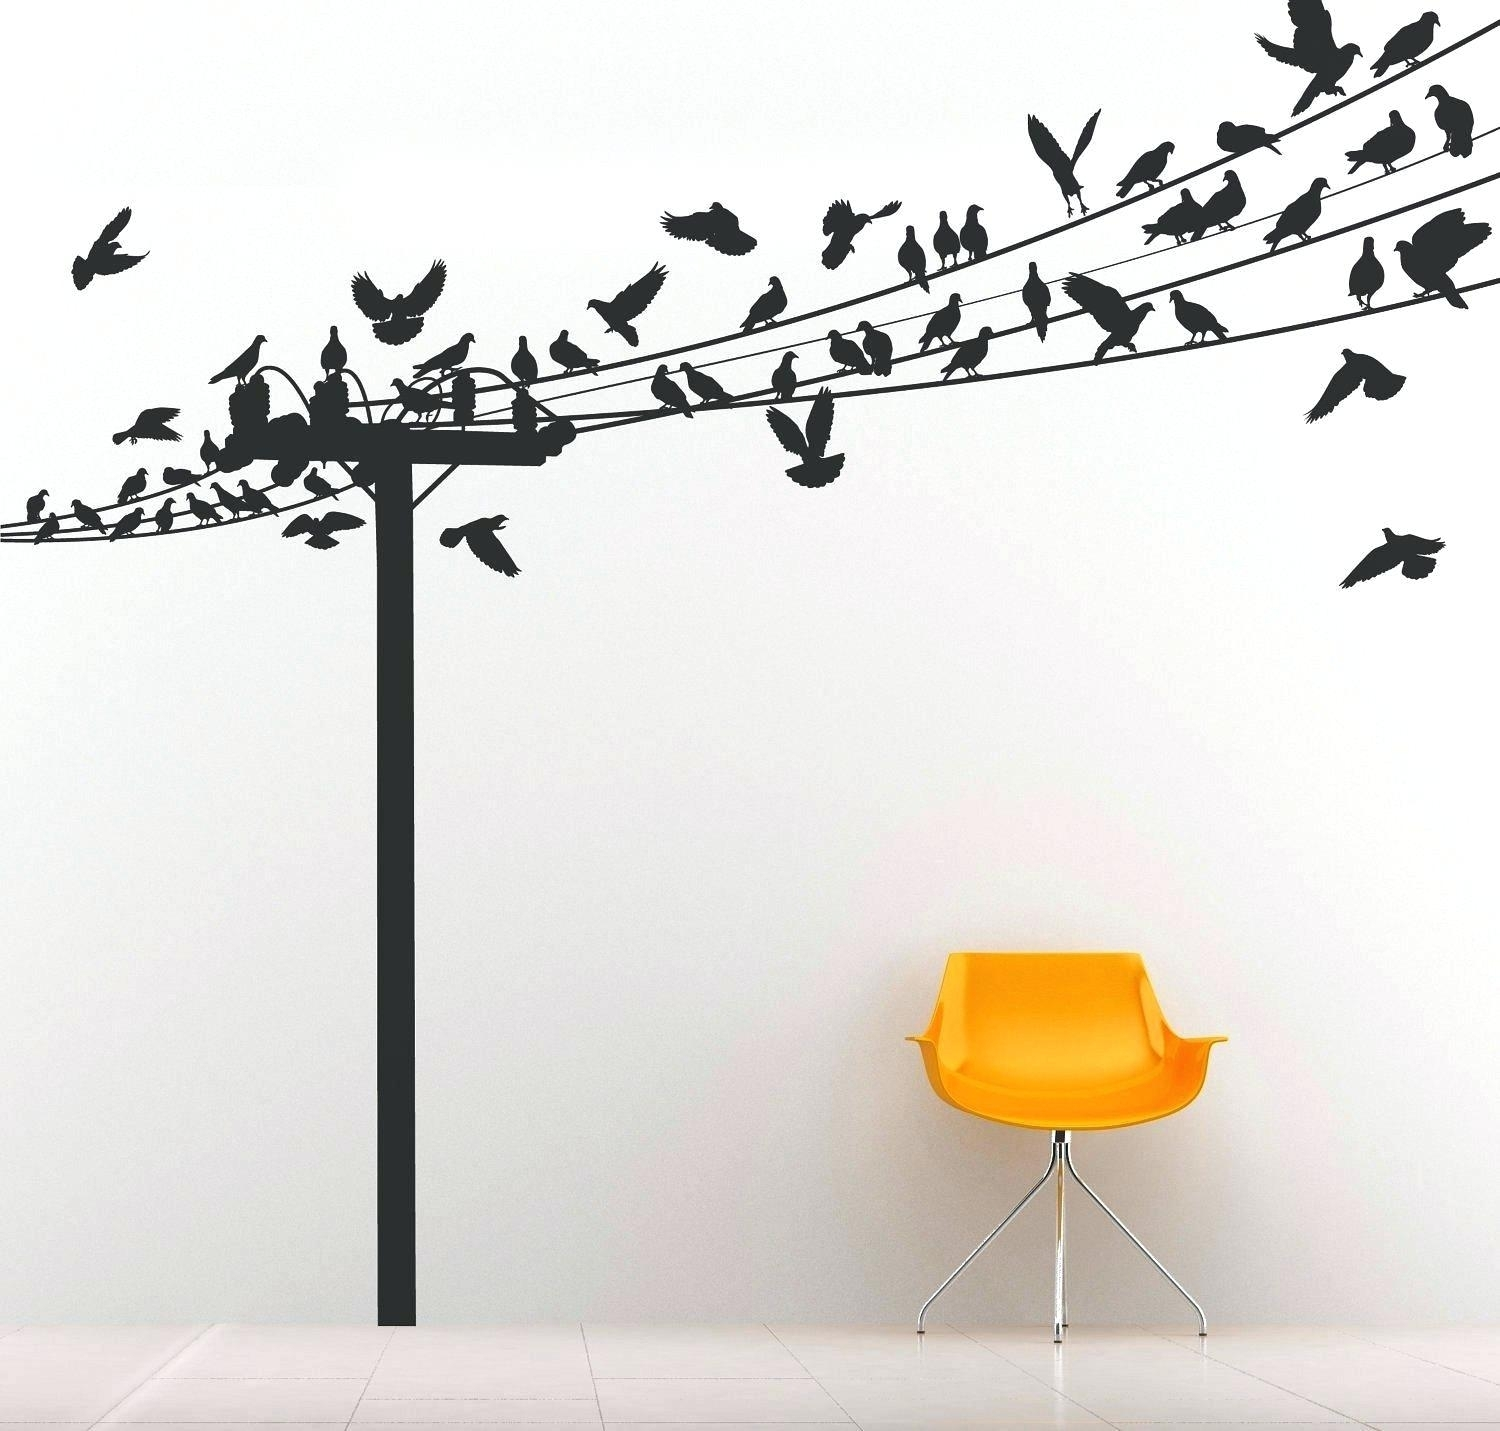 Bird Wall Decals For Nursery Wall Ideas Decorative Fabric Wall Art Within Current Fabric Bird Wall Art (View 3 of 15)